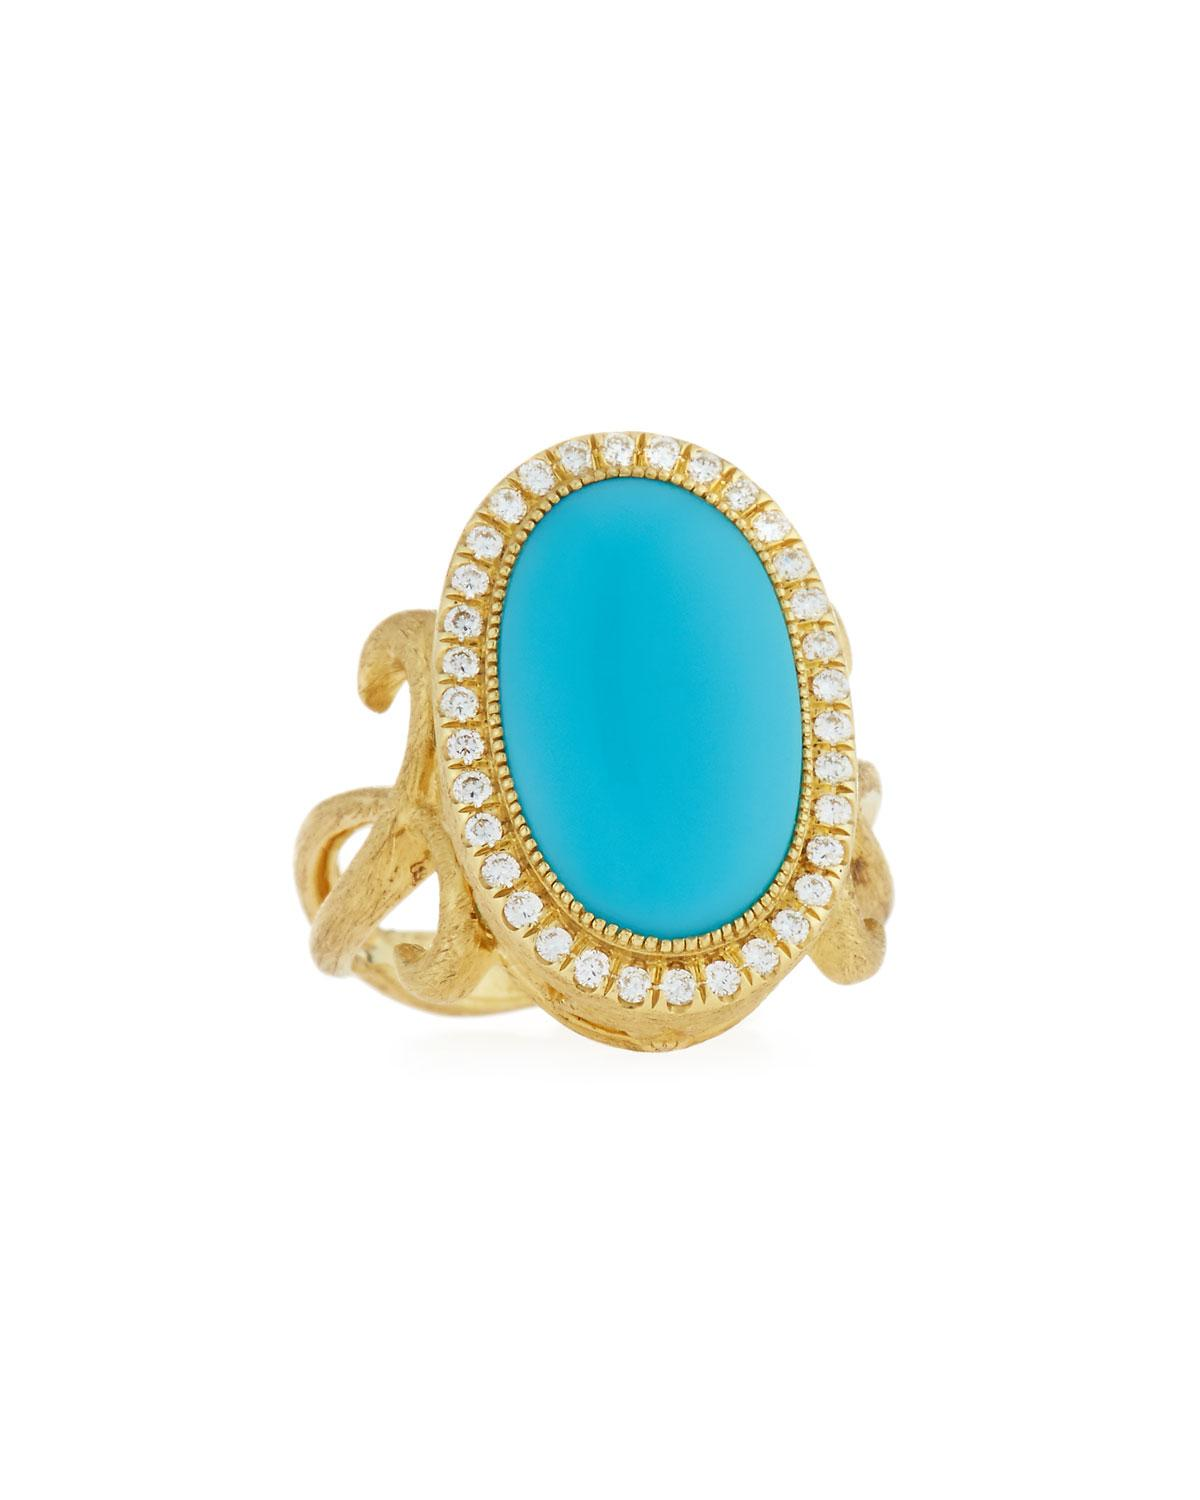 Jude Frances Turquoise Ring